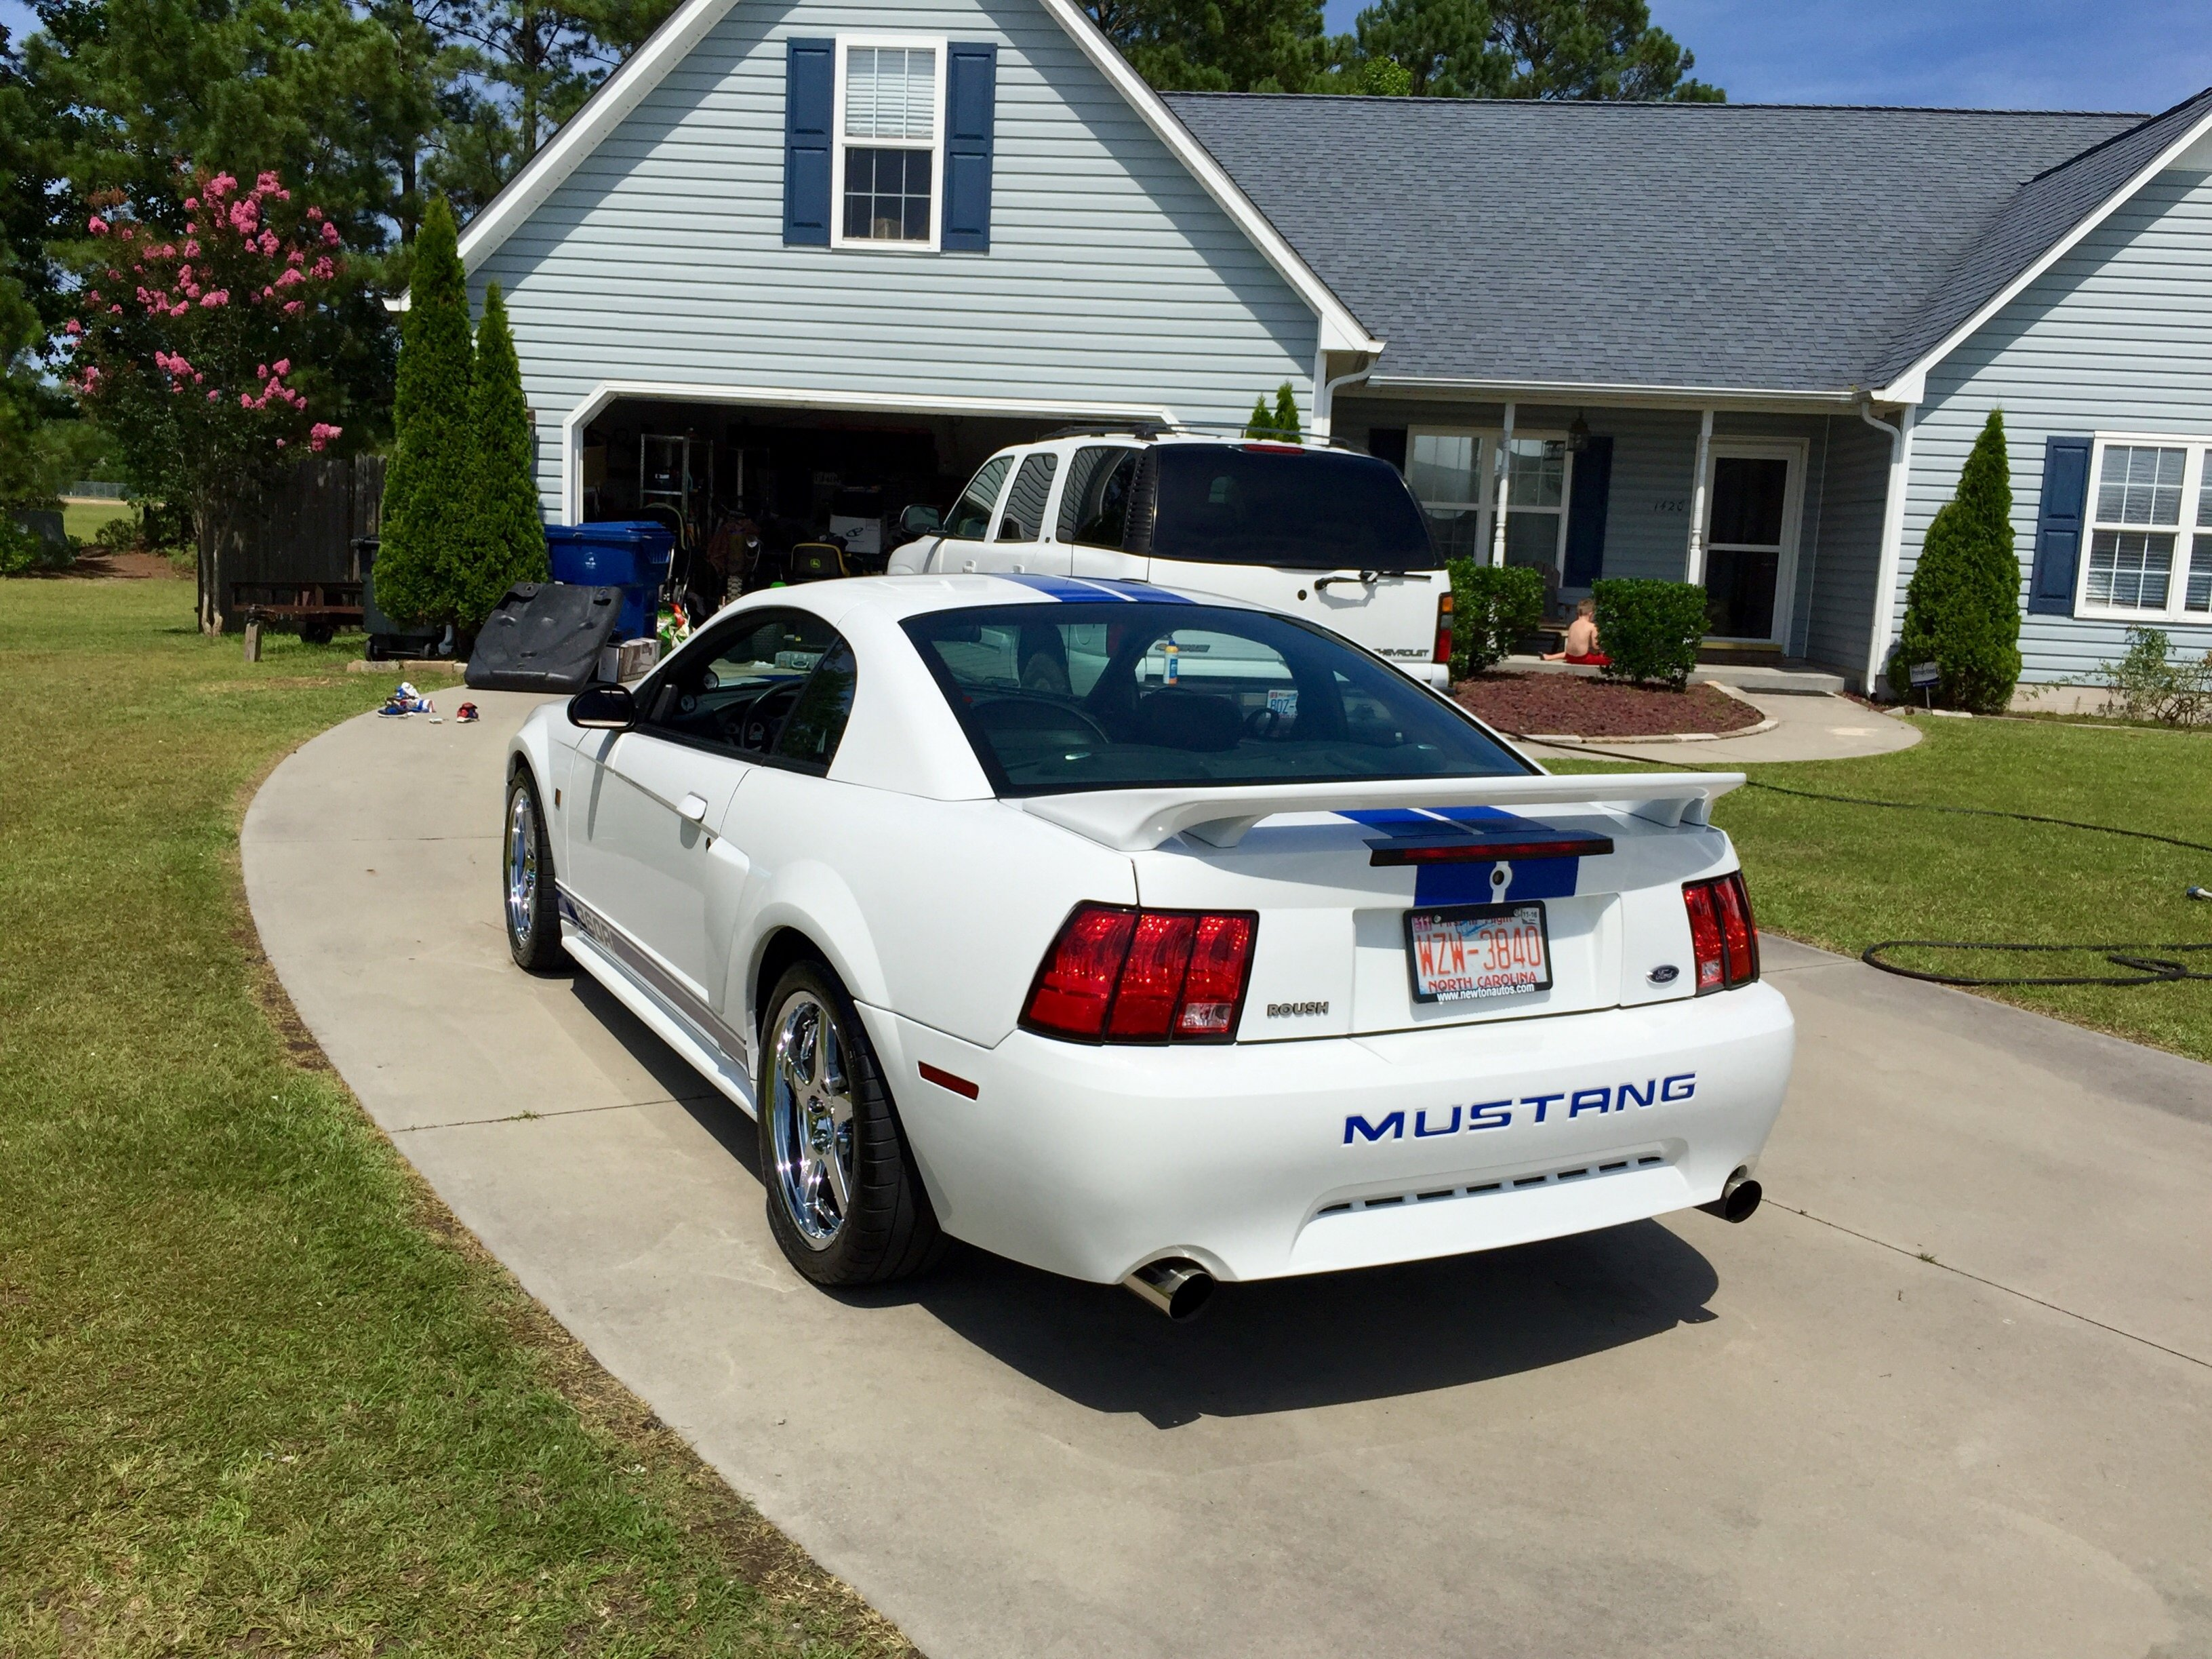 Click image for larger version  Name:Mustang 5.jpg Views:111 Size:1.43 MB ID:205821